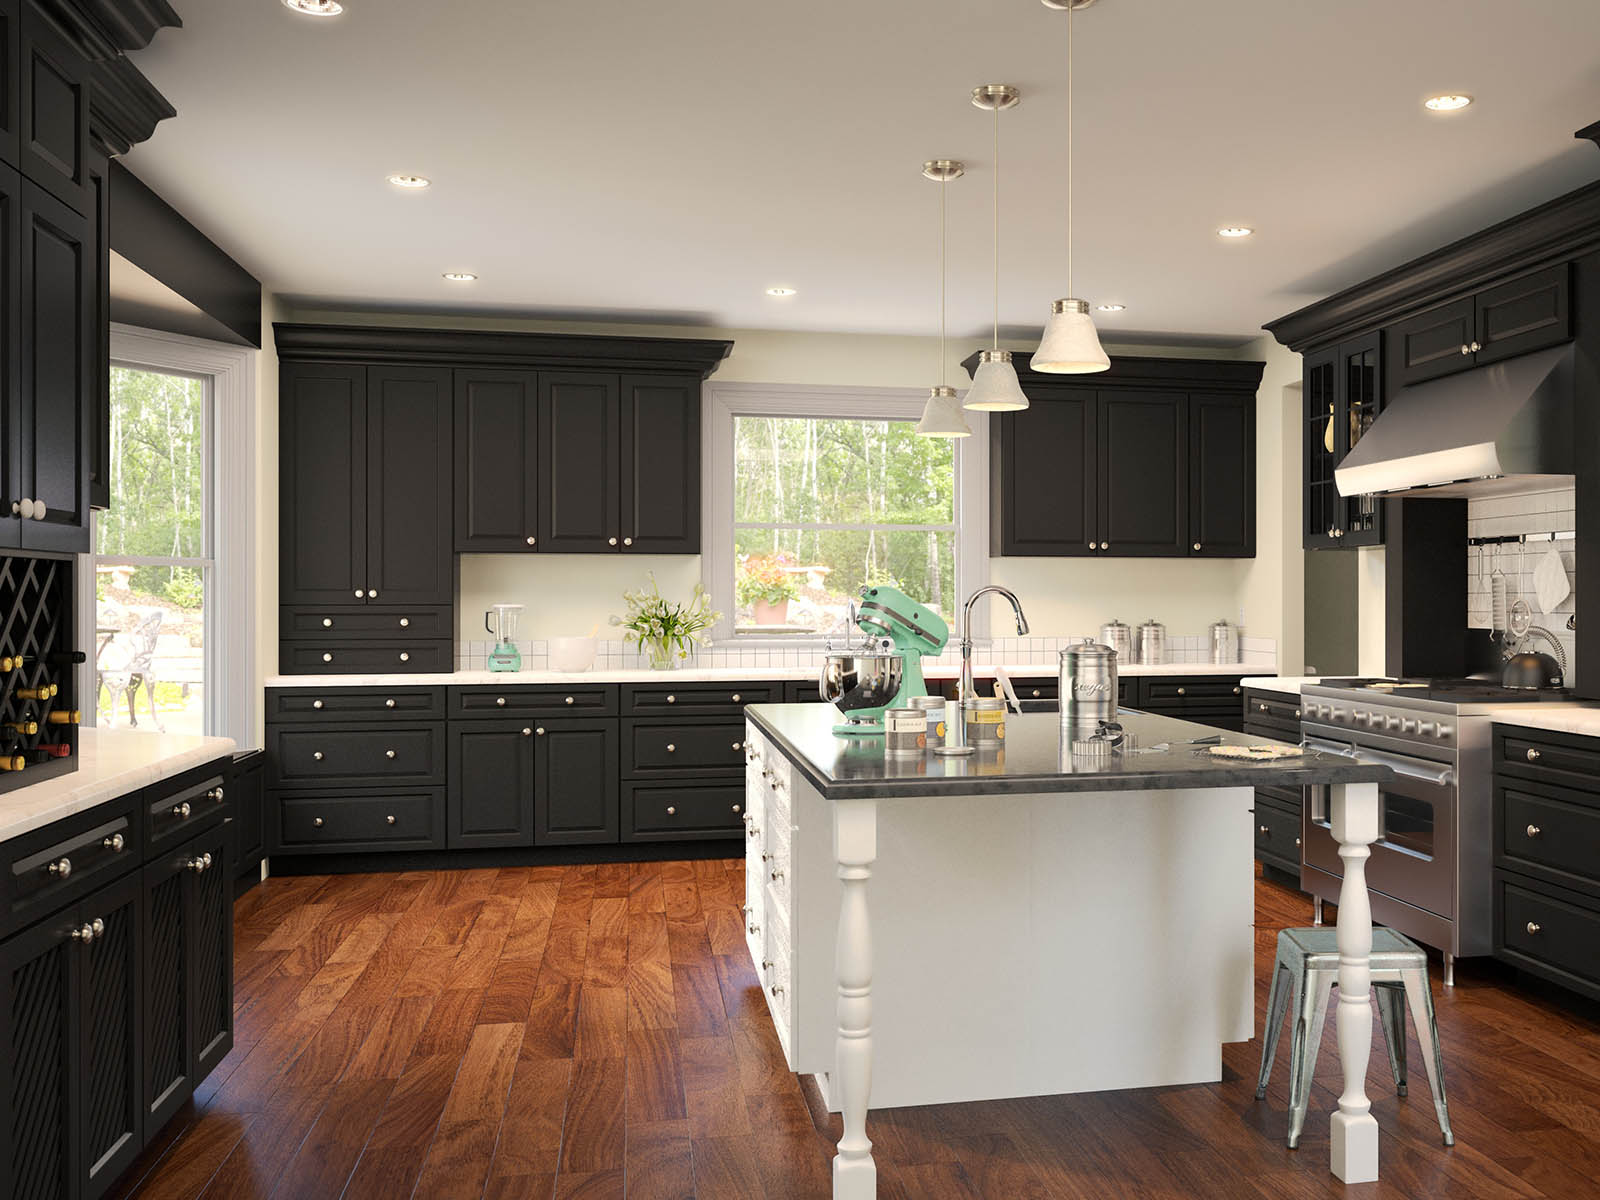 Kitchen, Countertops, Cabinets and Baths Sales and ...